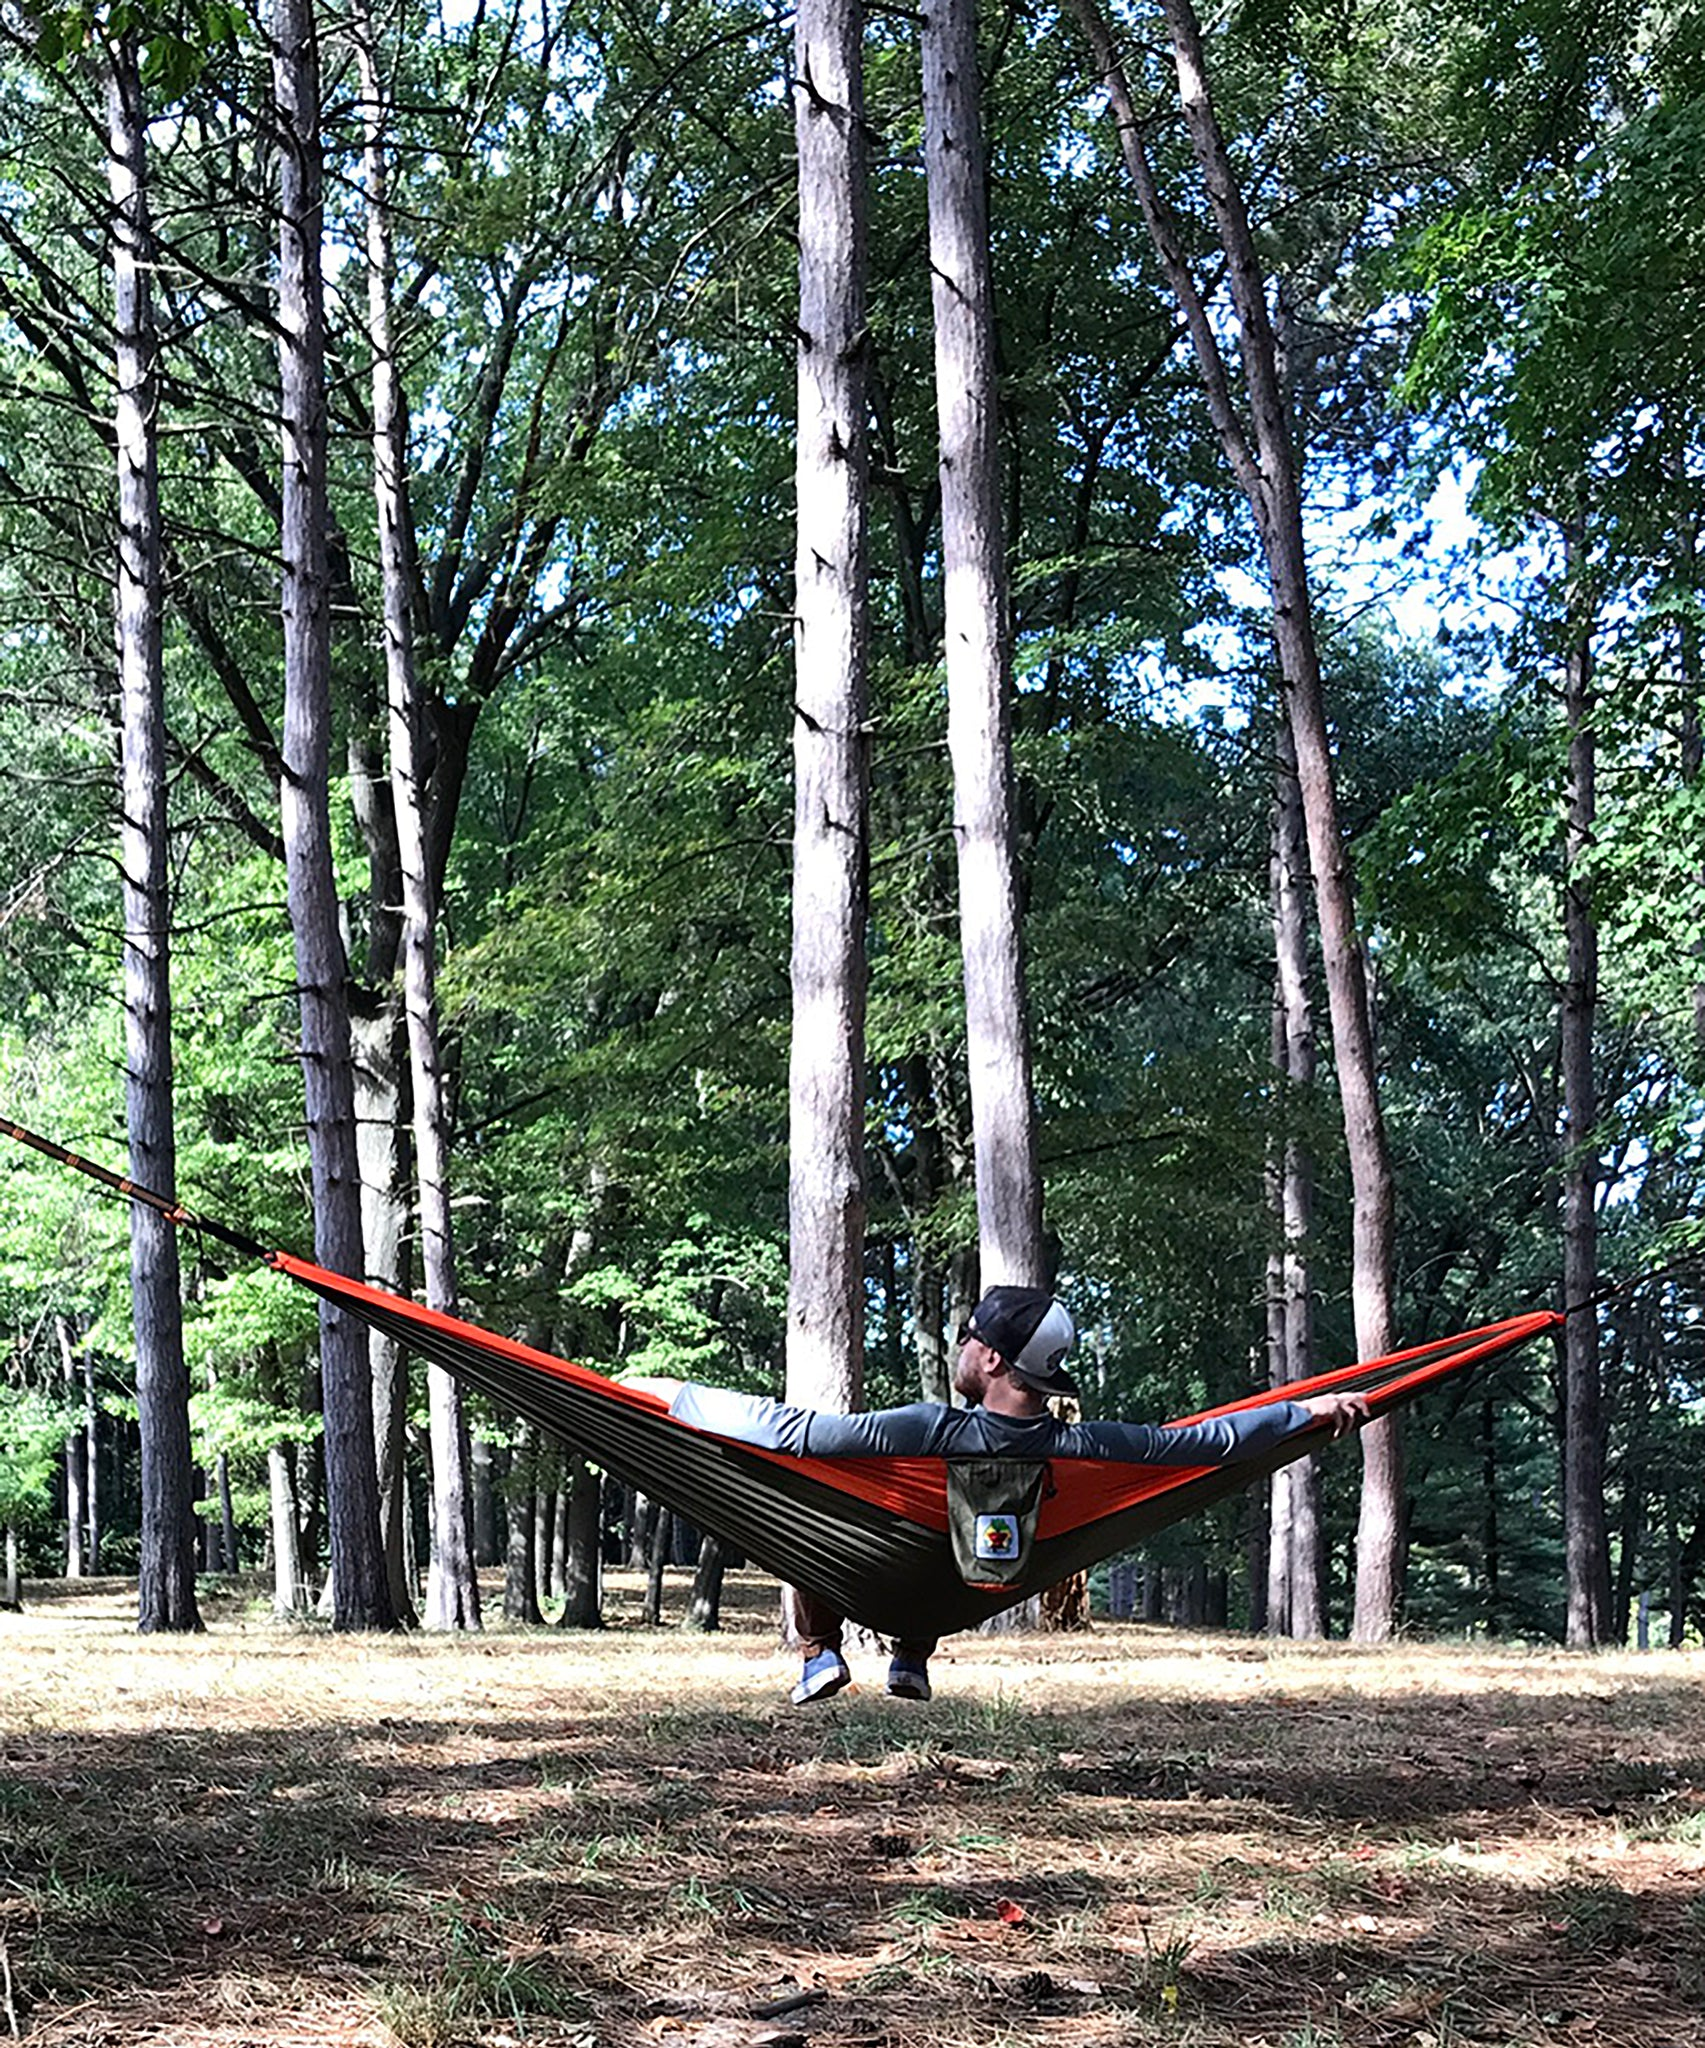 camping lbs that v garden collections green forbidden hammock for holds single portable road nylon double